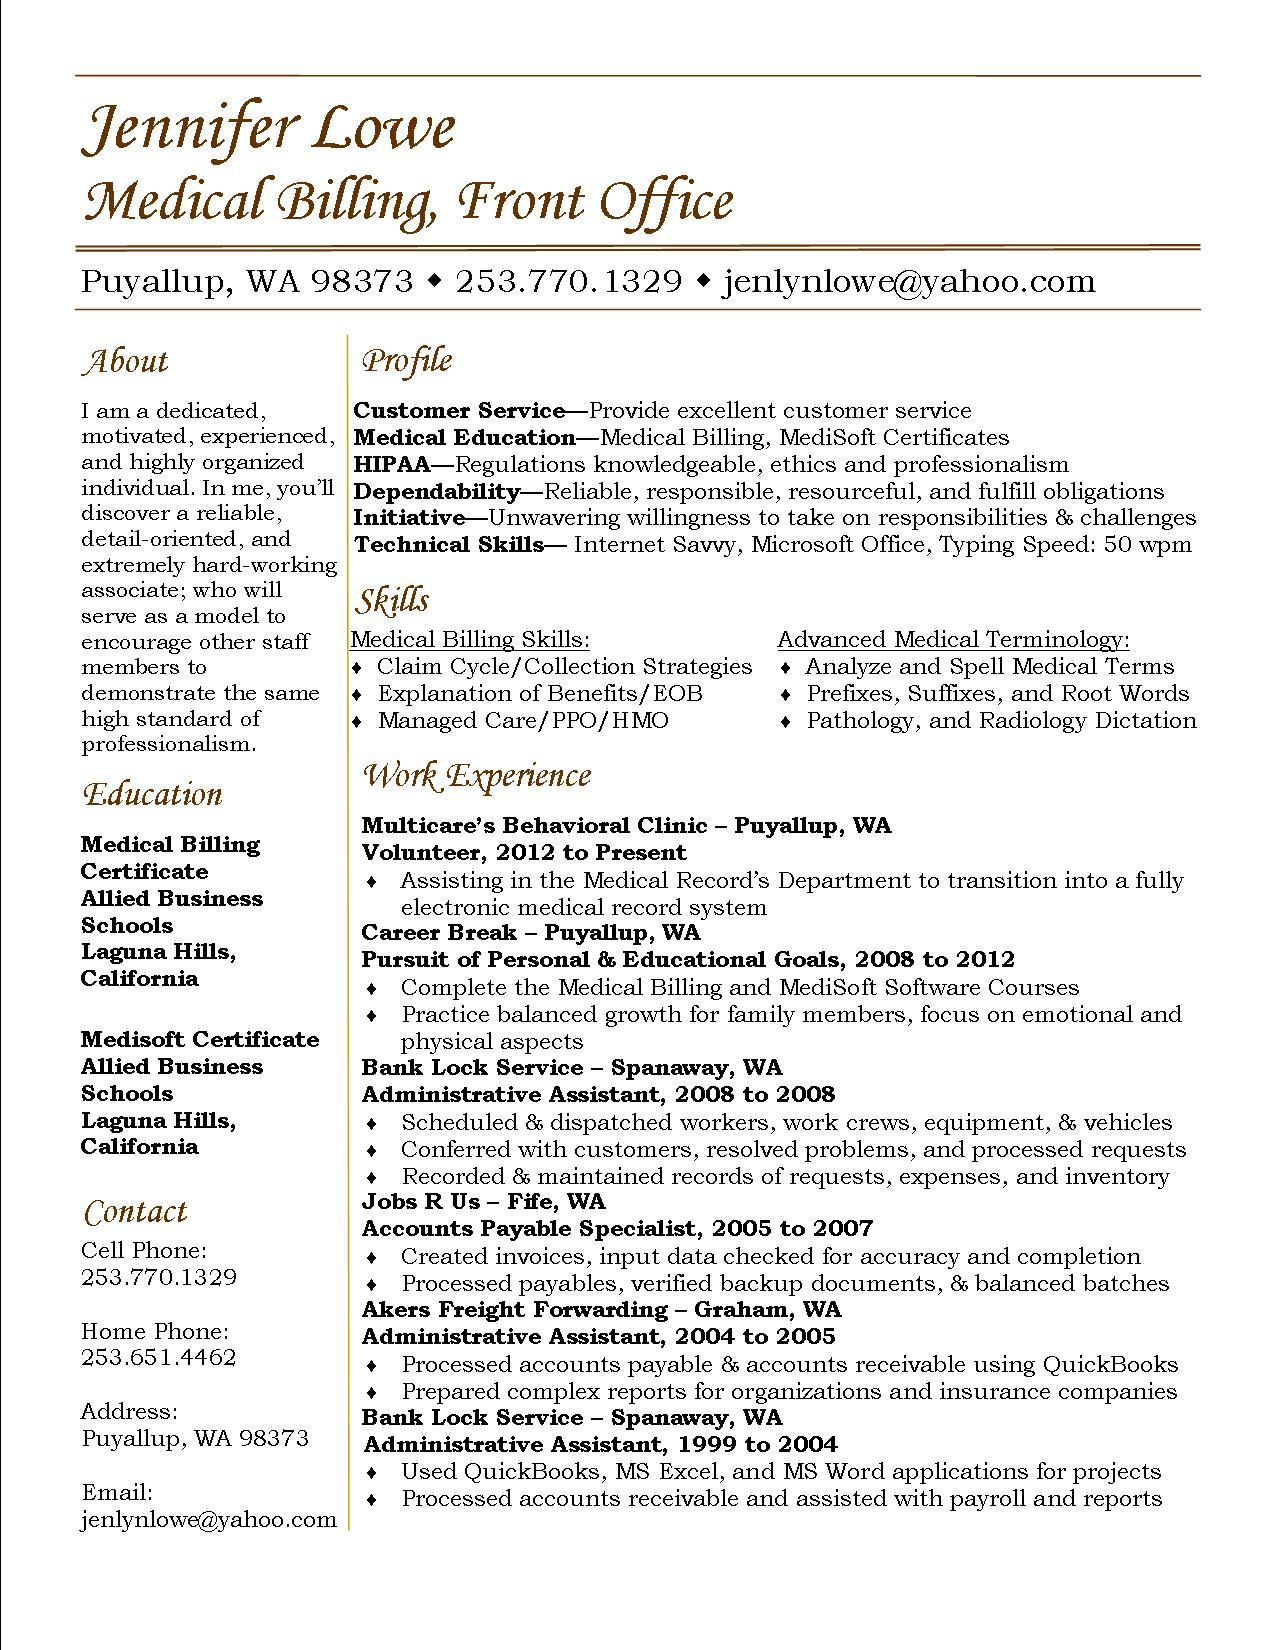 Jennifer Lowe Resume - Medical Billing #resume #career | Medical ...